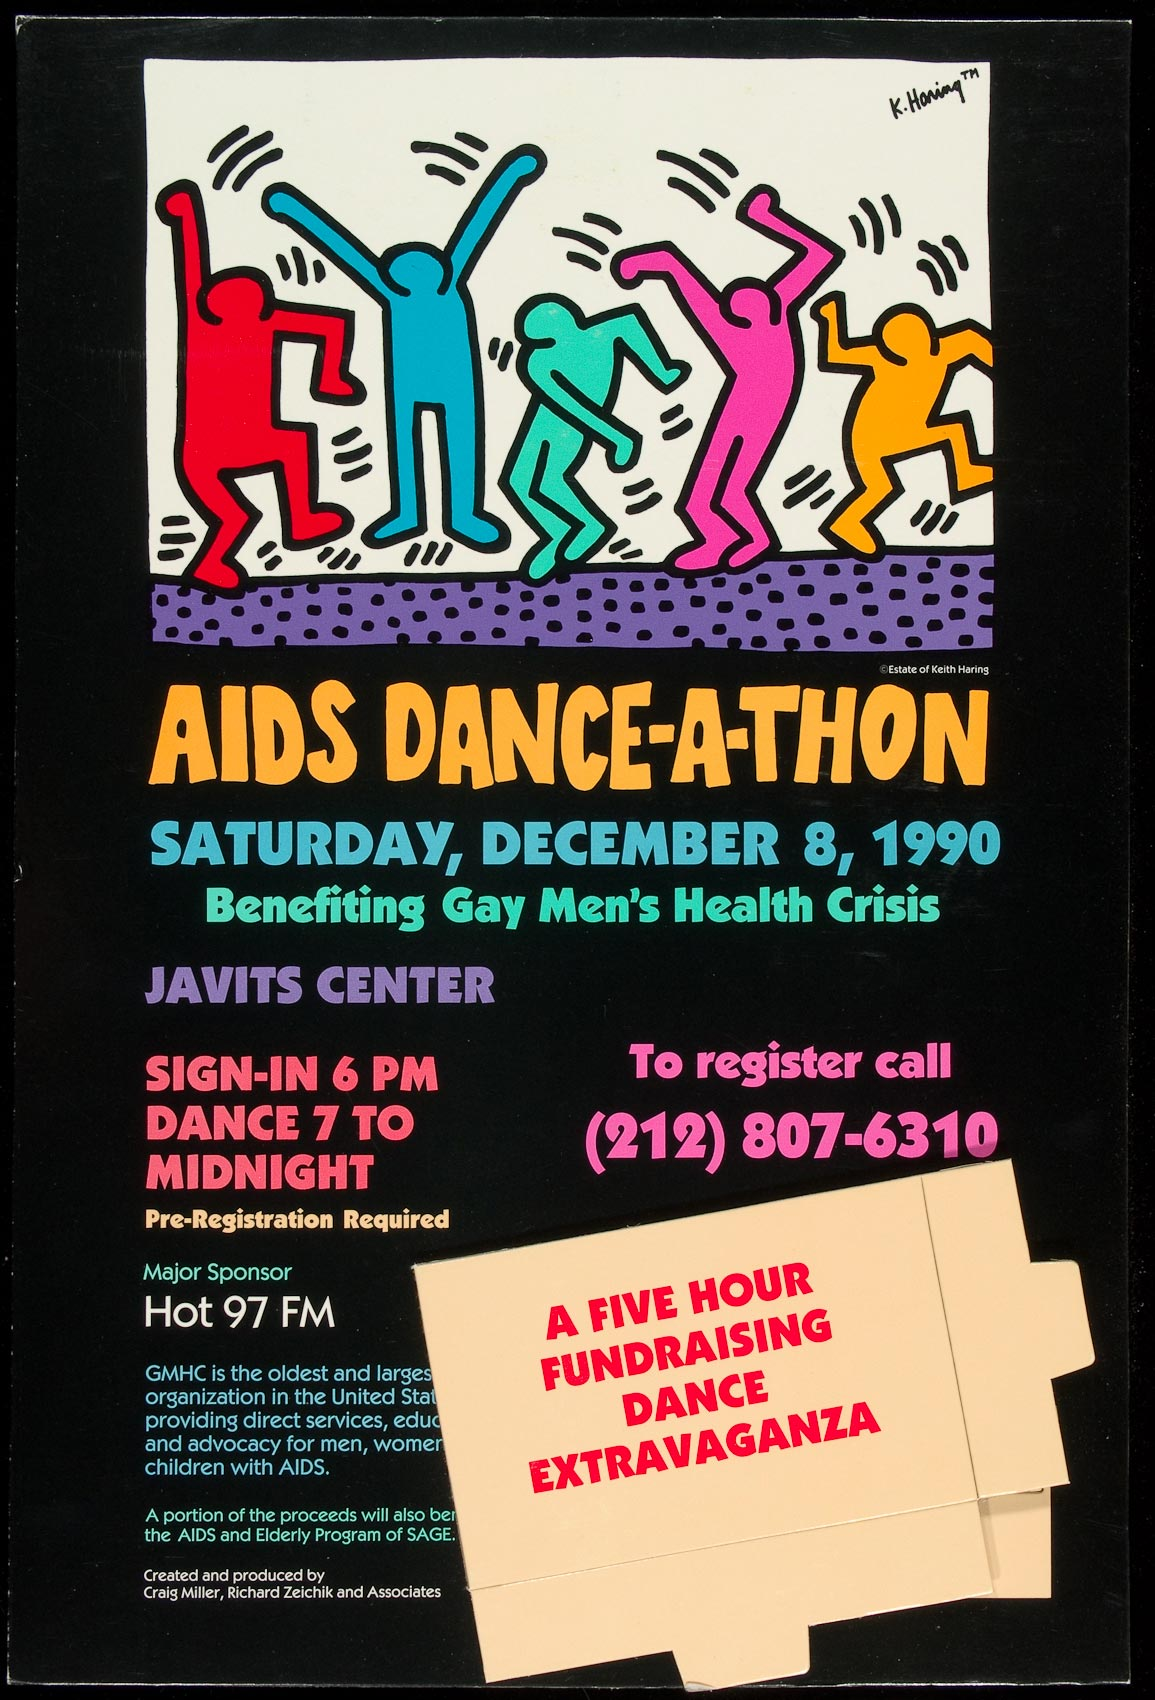 AIDS poster for a Dance-a-thon event